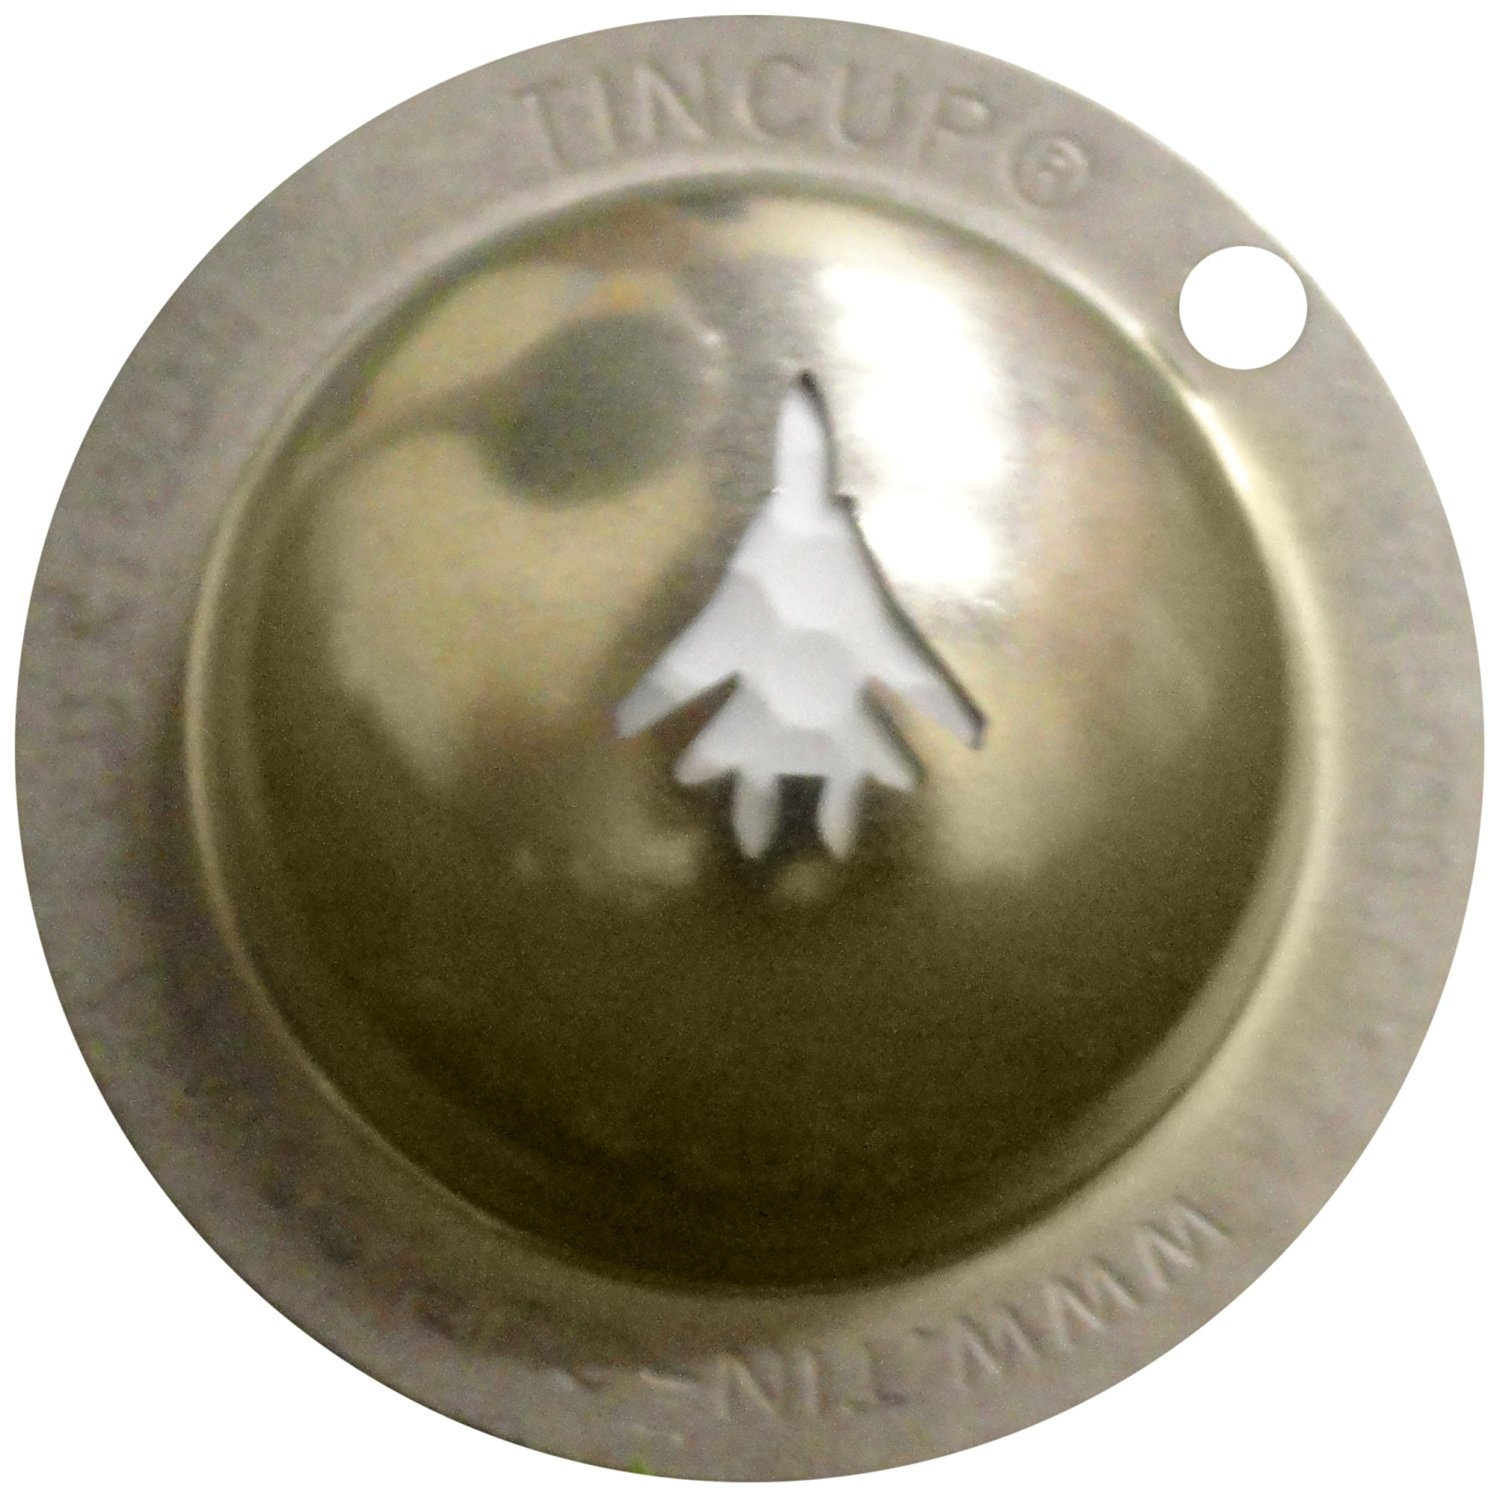 Tin Cup Top Gun Golf Ball Marking Stencil, Steel